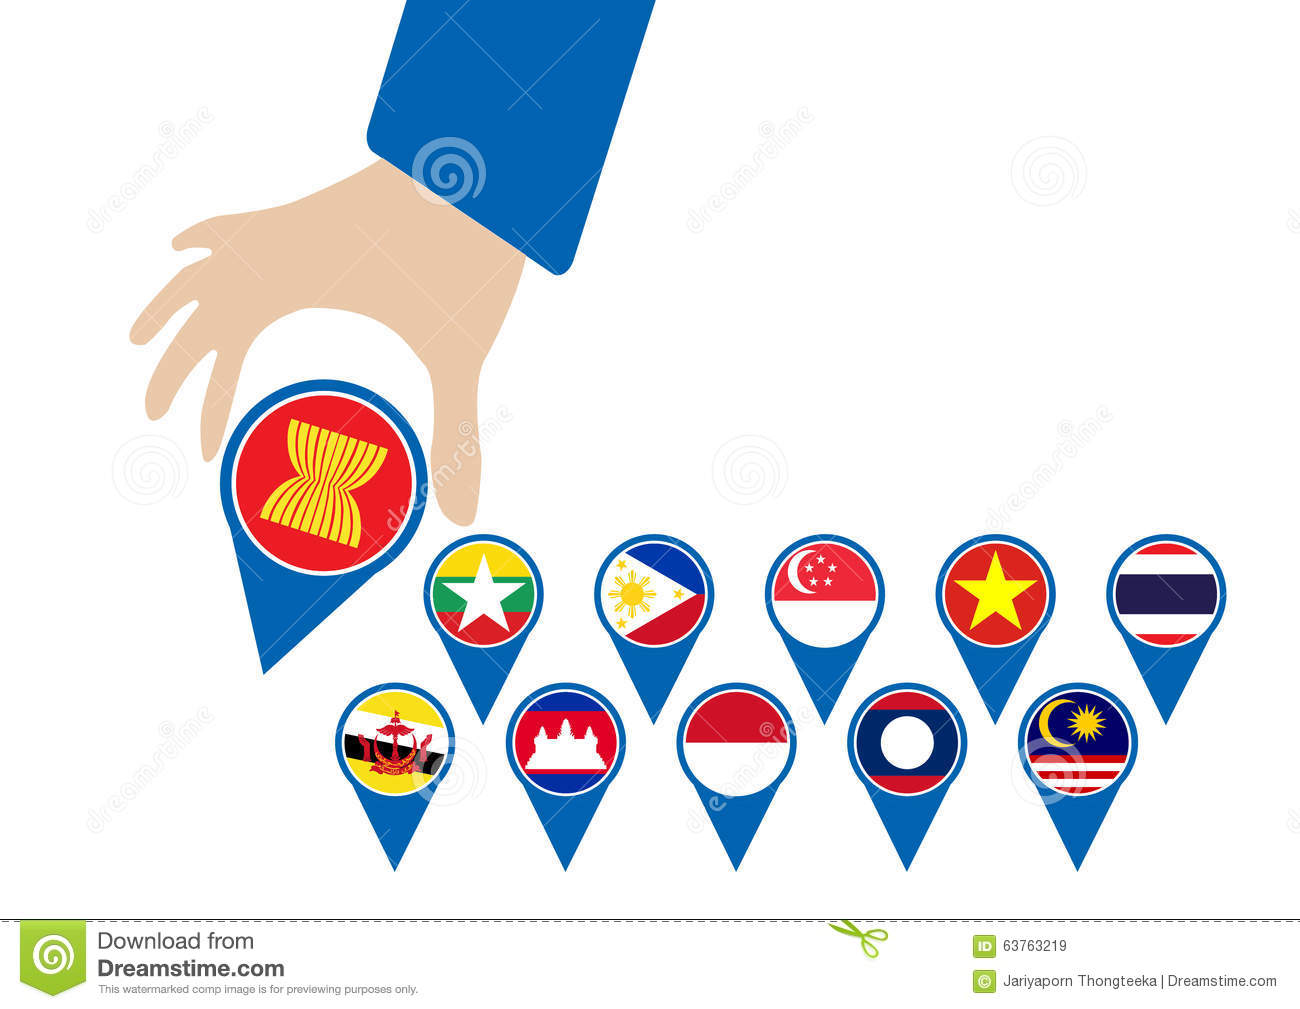 asean economic community The association of southeast asian nations (asean / ˈ ɑː s i ɑː n / ah-see-ahn, / ˈ ɑː z i ɑː n / ah-zee-ahn) is a regional intergovernmental organization comprising ten southeast asian countries that promotes intergovernmental cooperation and facilitates economic, political, security, military, educational, and sociocultural.